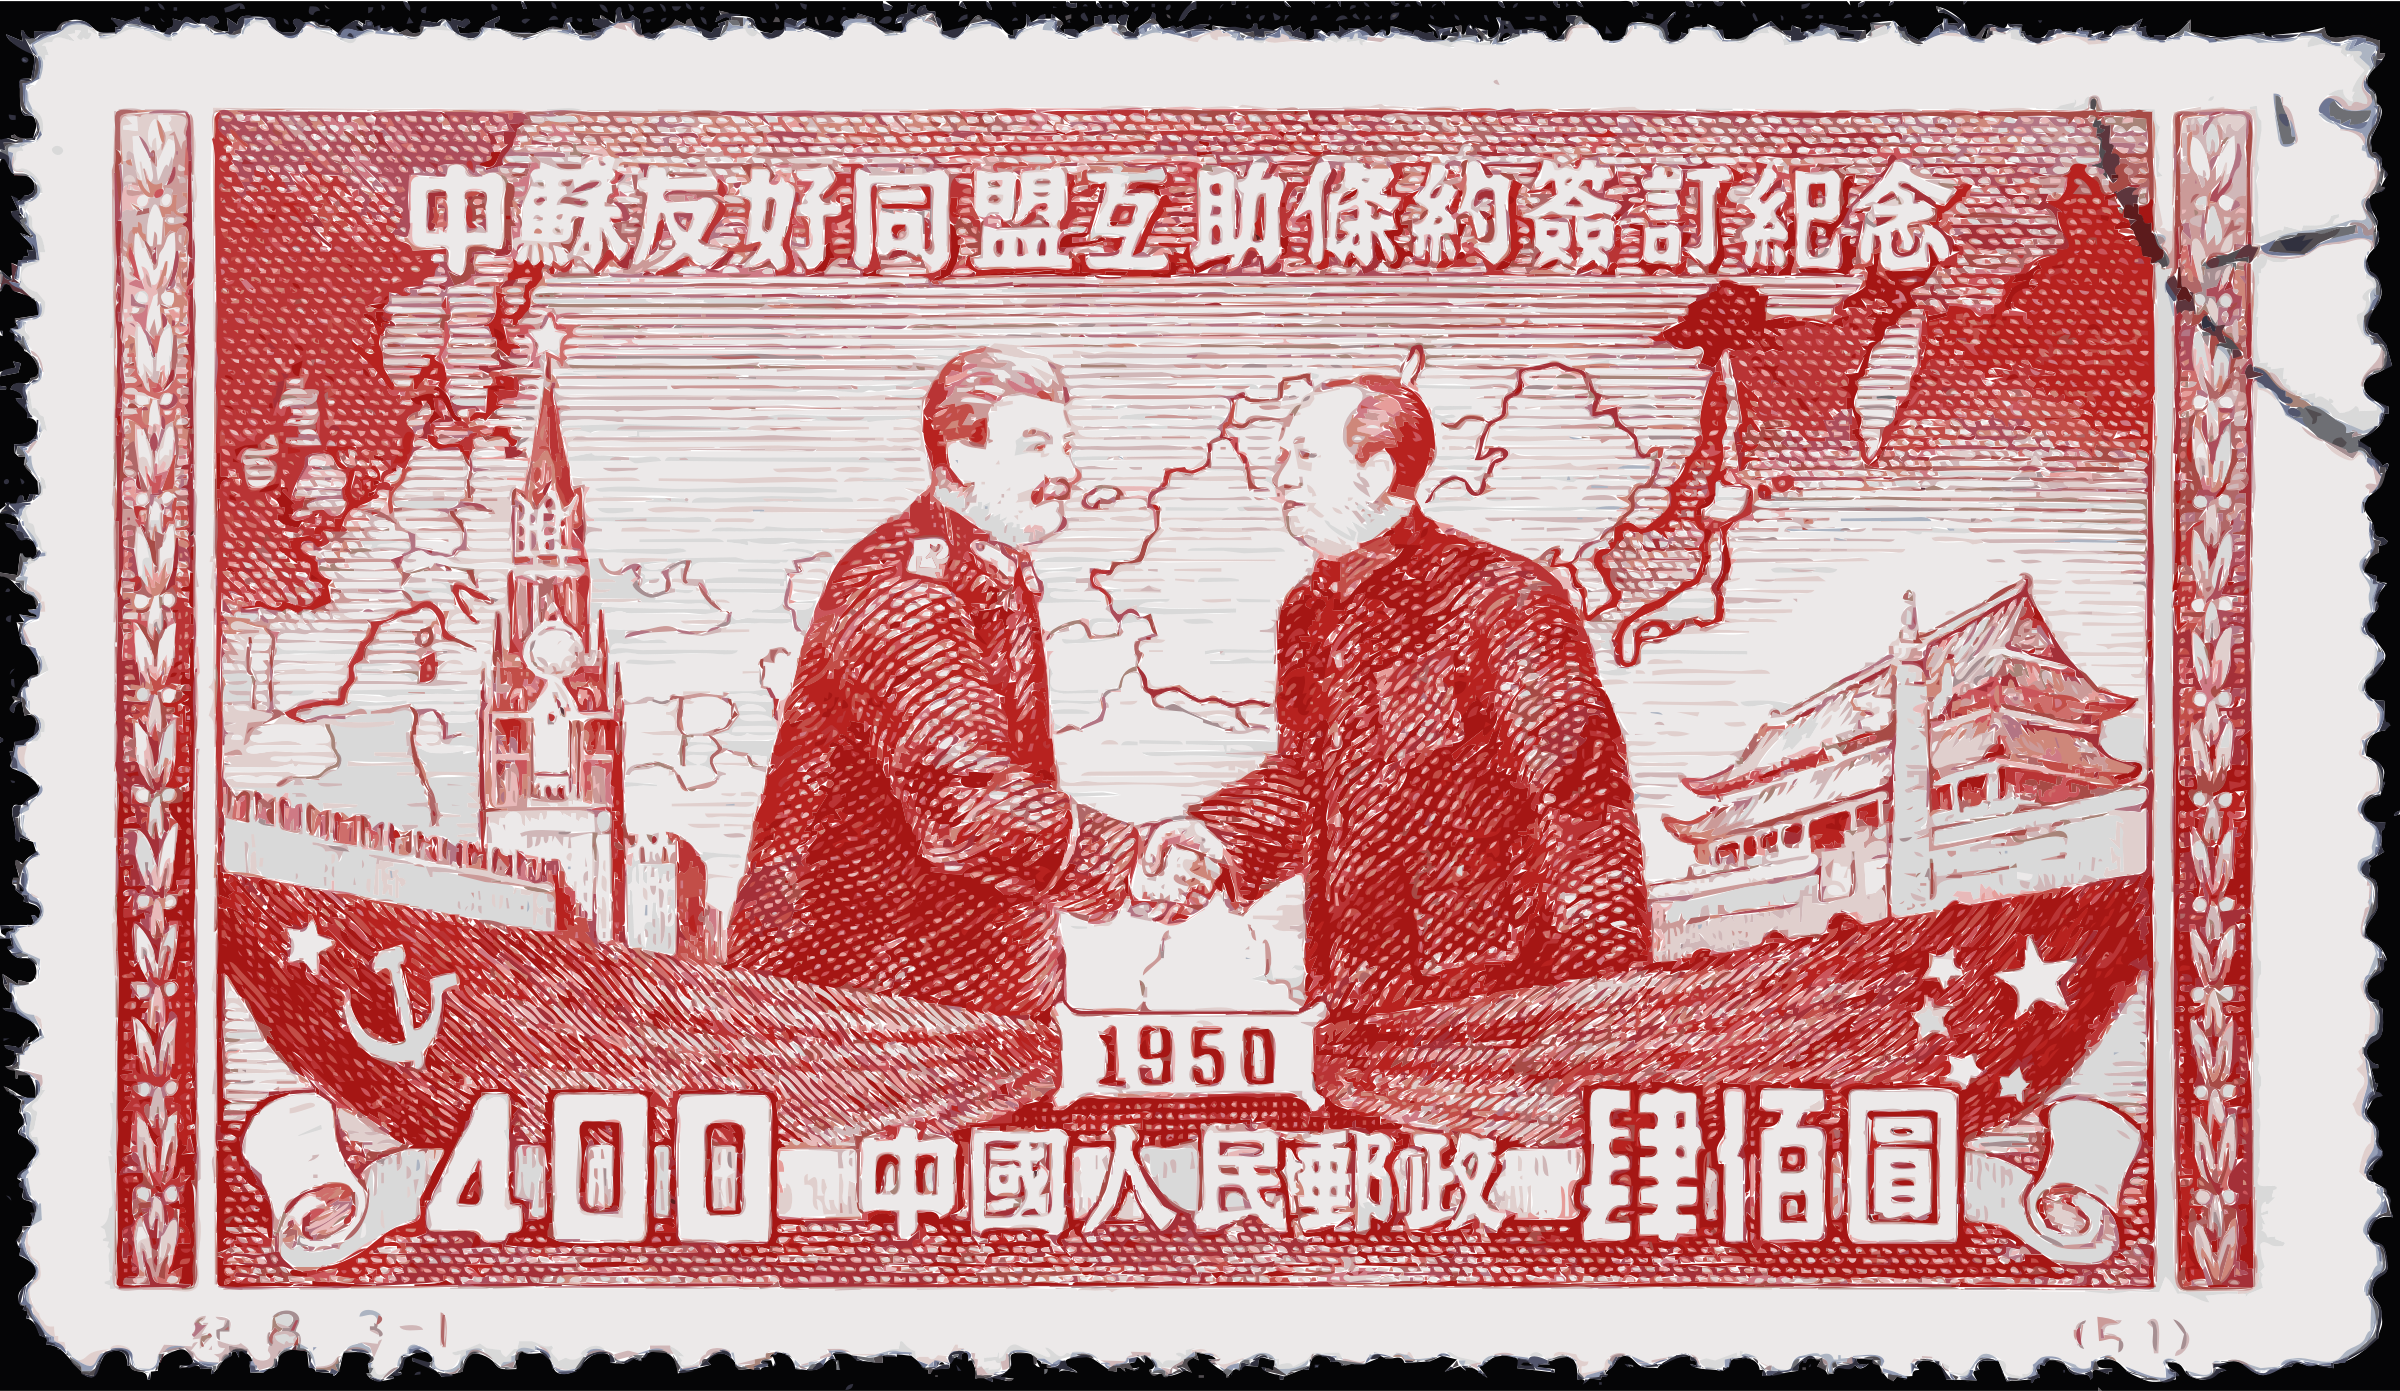 Chinese stamp in 1950 by 3wt1f5+ceucmedqy949o